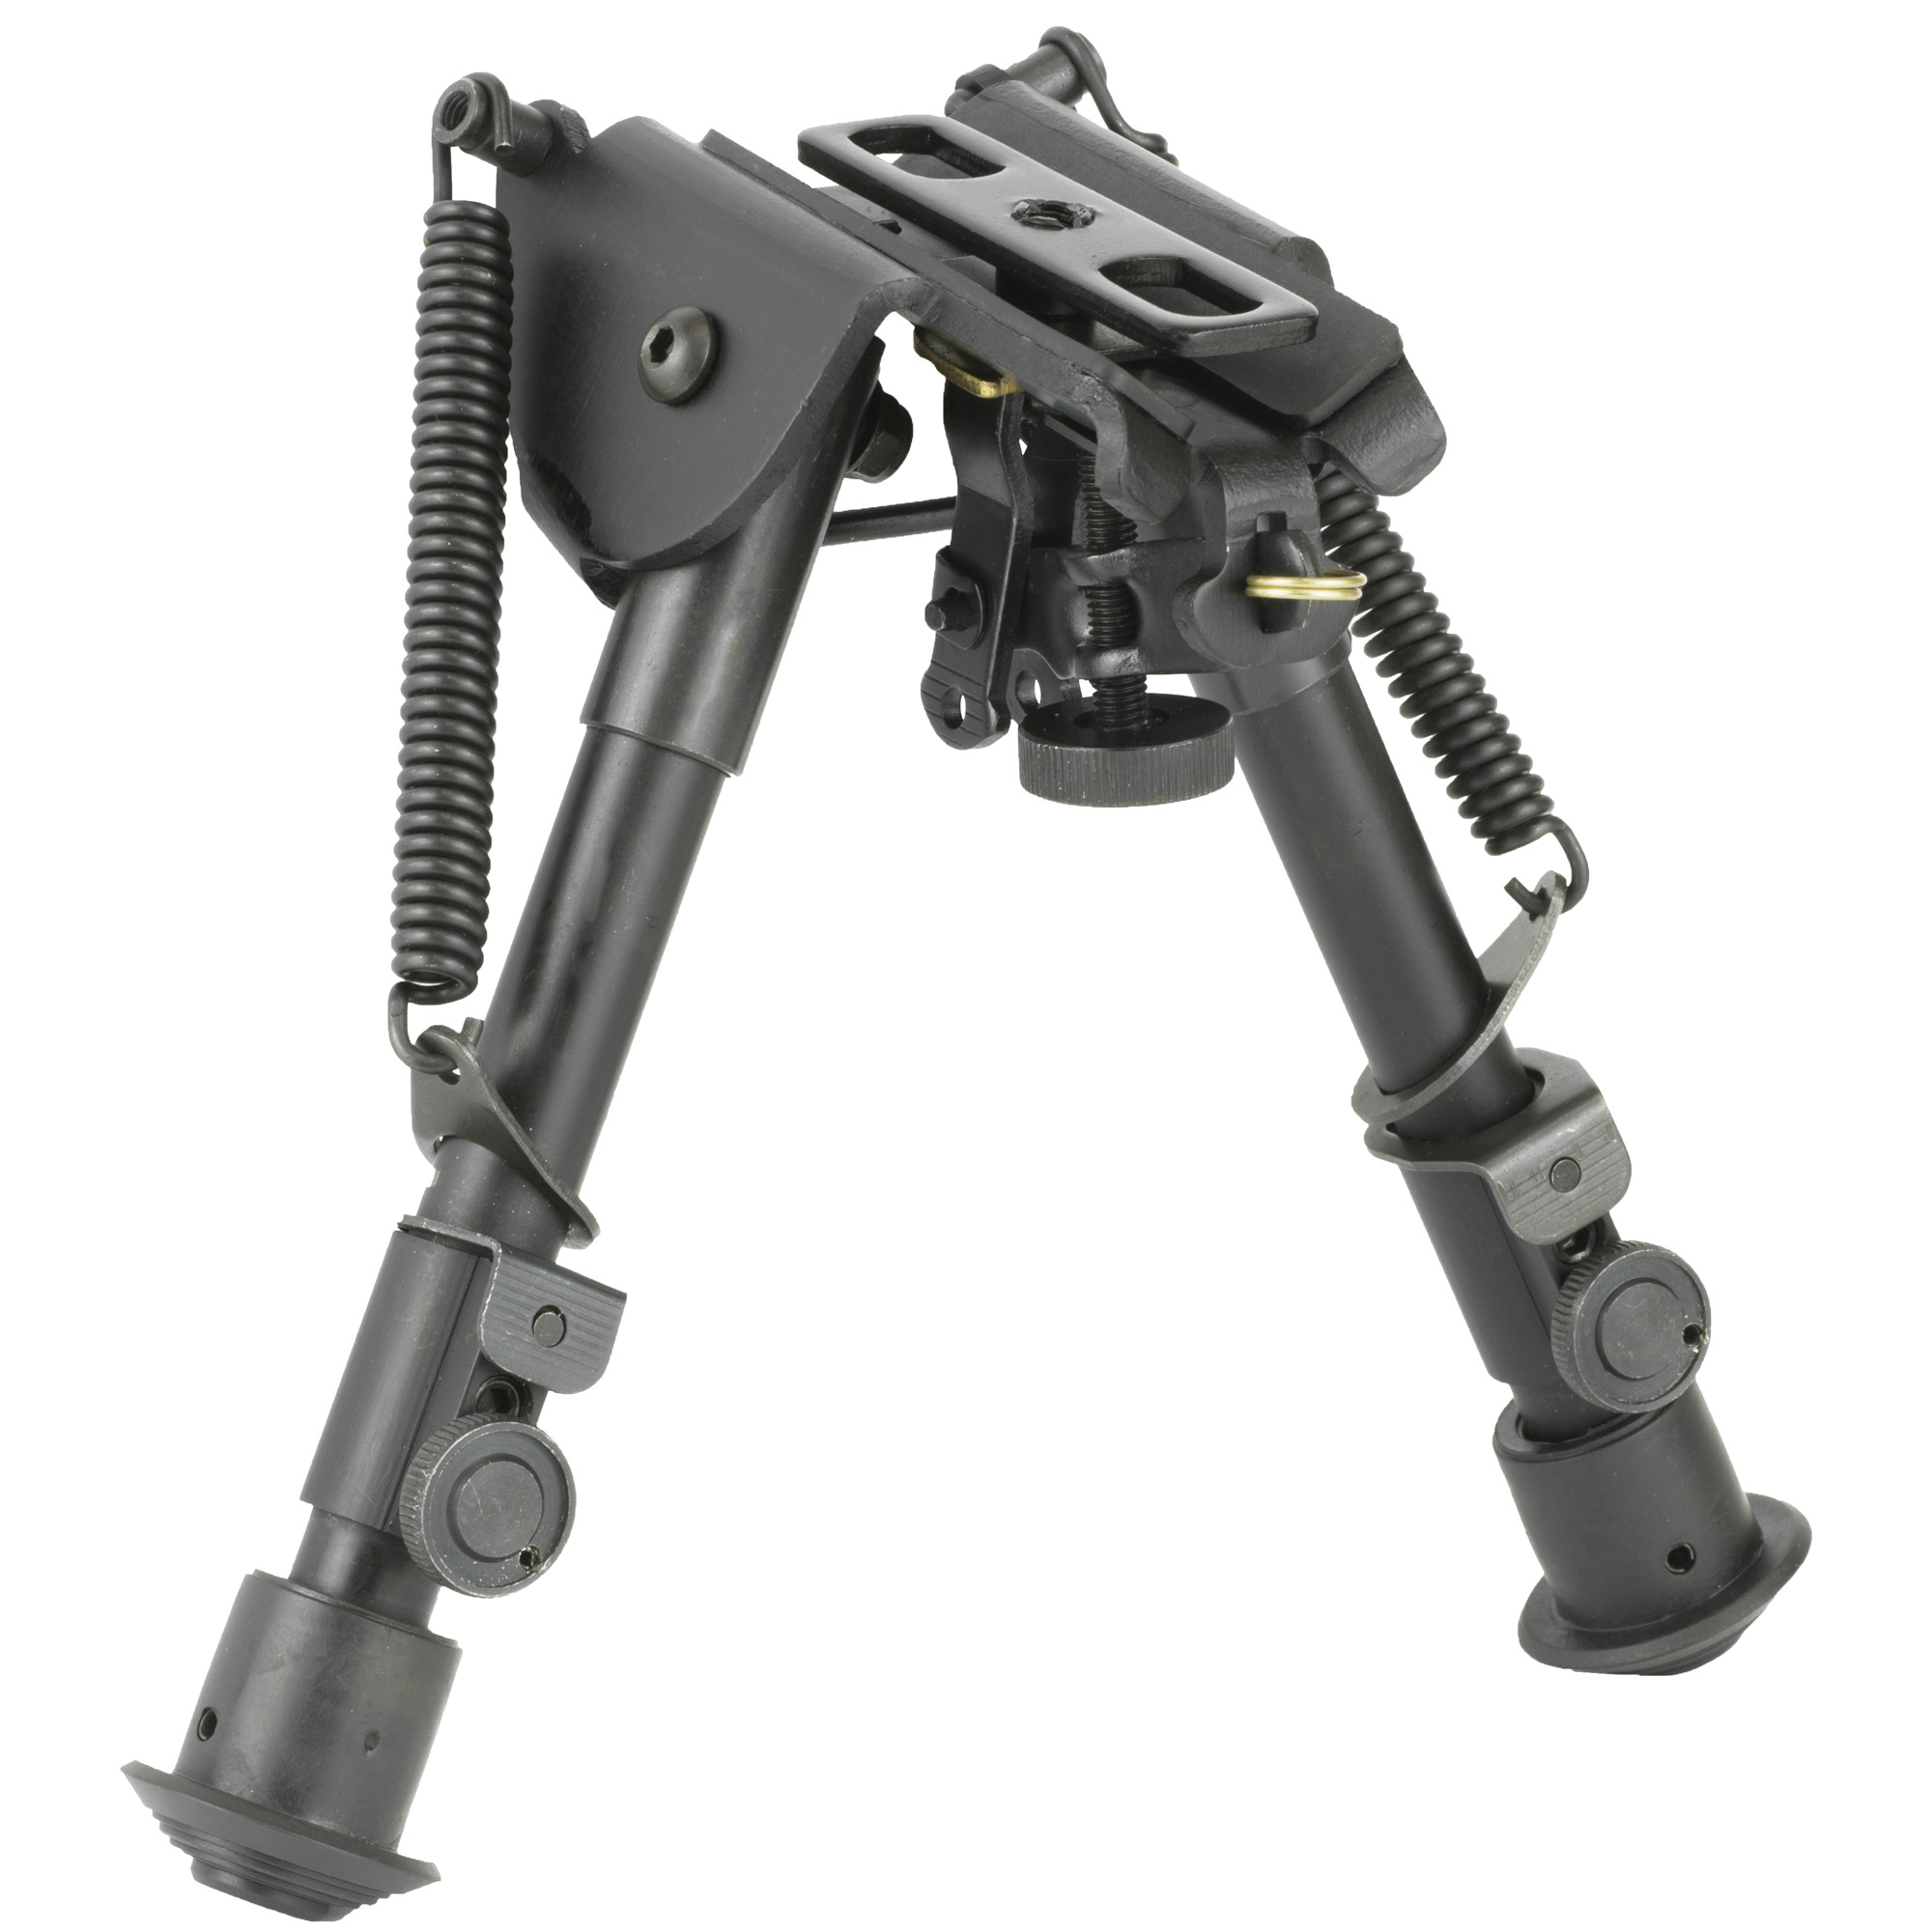 "This compact size precision grade bipod with smooth tension legs mounts directly onto most sling swivel studs. It includes three adapters for flexible installation. An AR-15 GI handguard adapter"" universal rifle barrel mount and Weaver/Picatinny type rail adapter with sling stud"